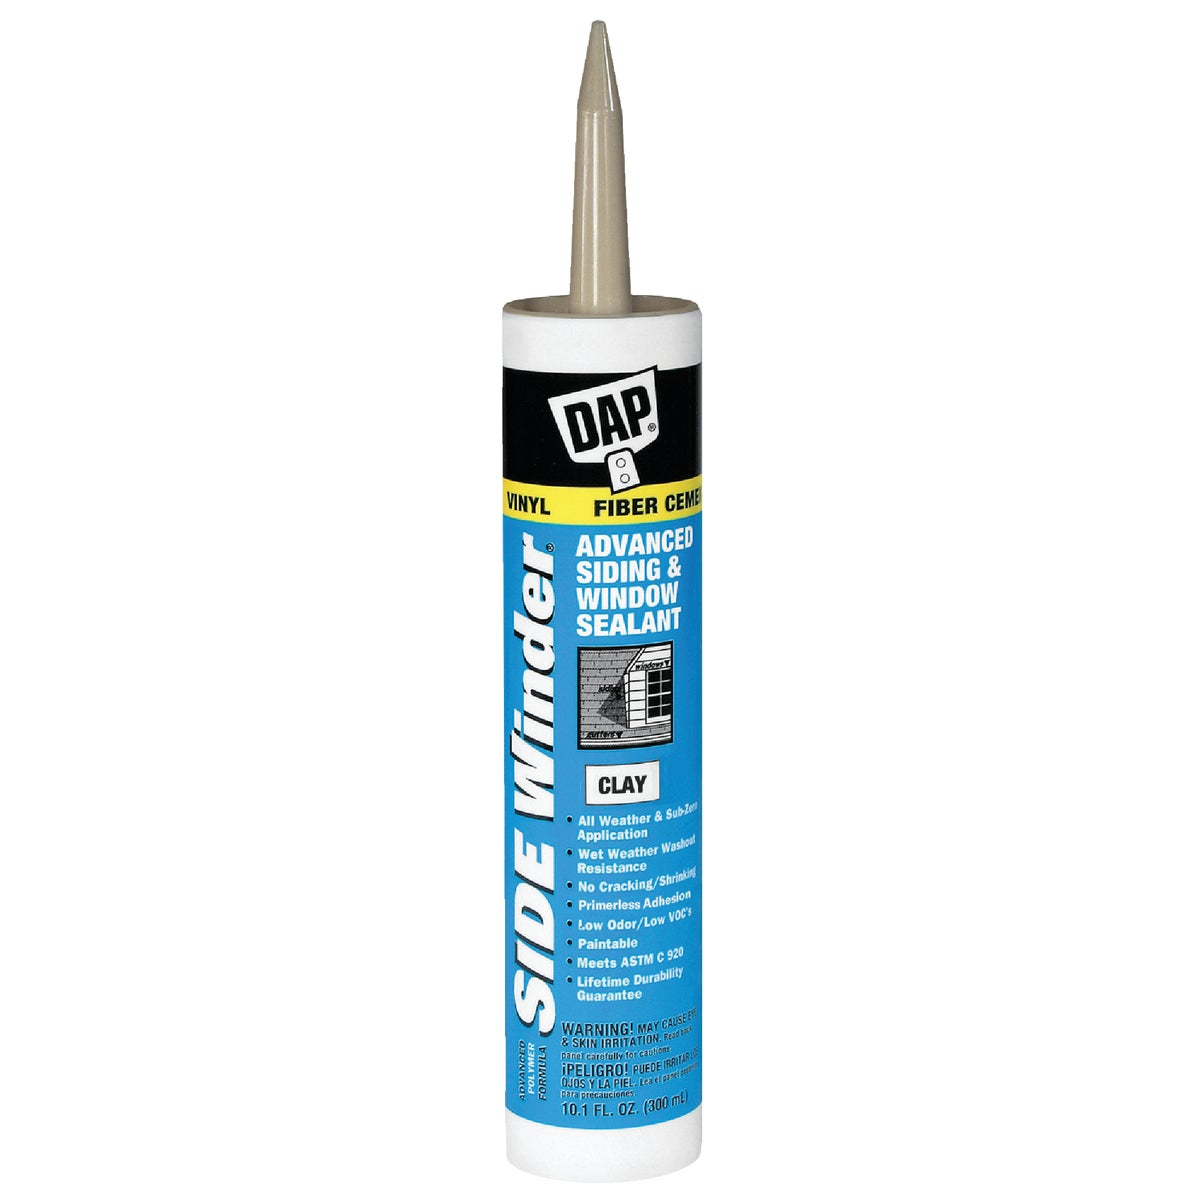 CLAY SIDEWINDER SEALANT - 00804 by Dap Inc